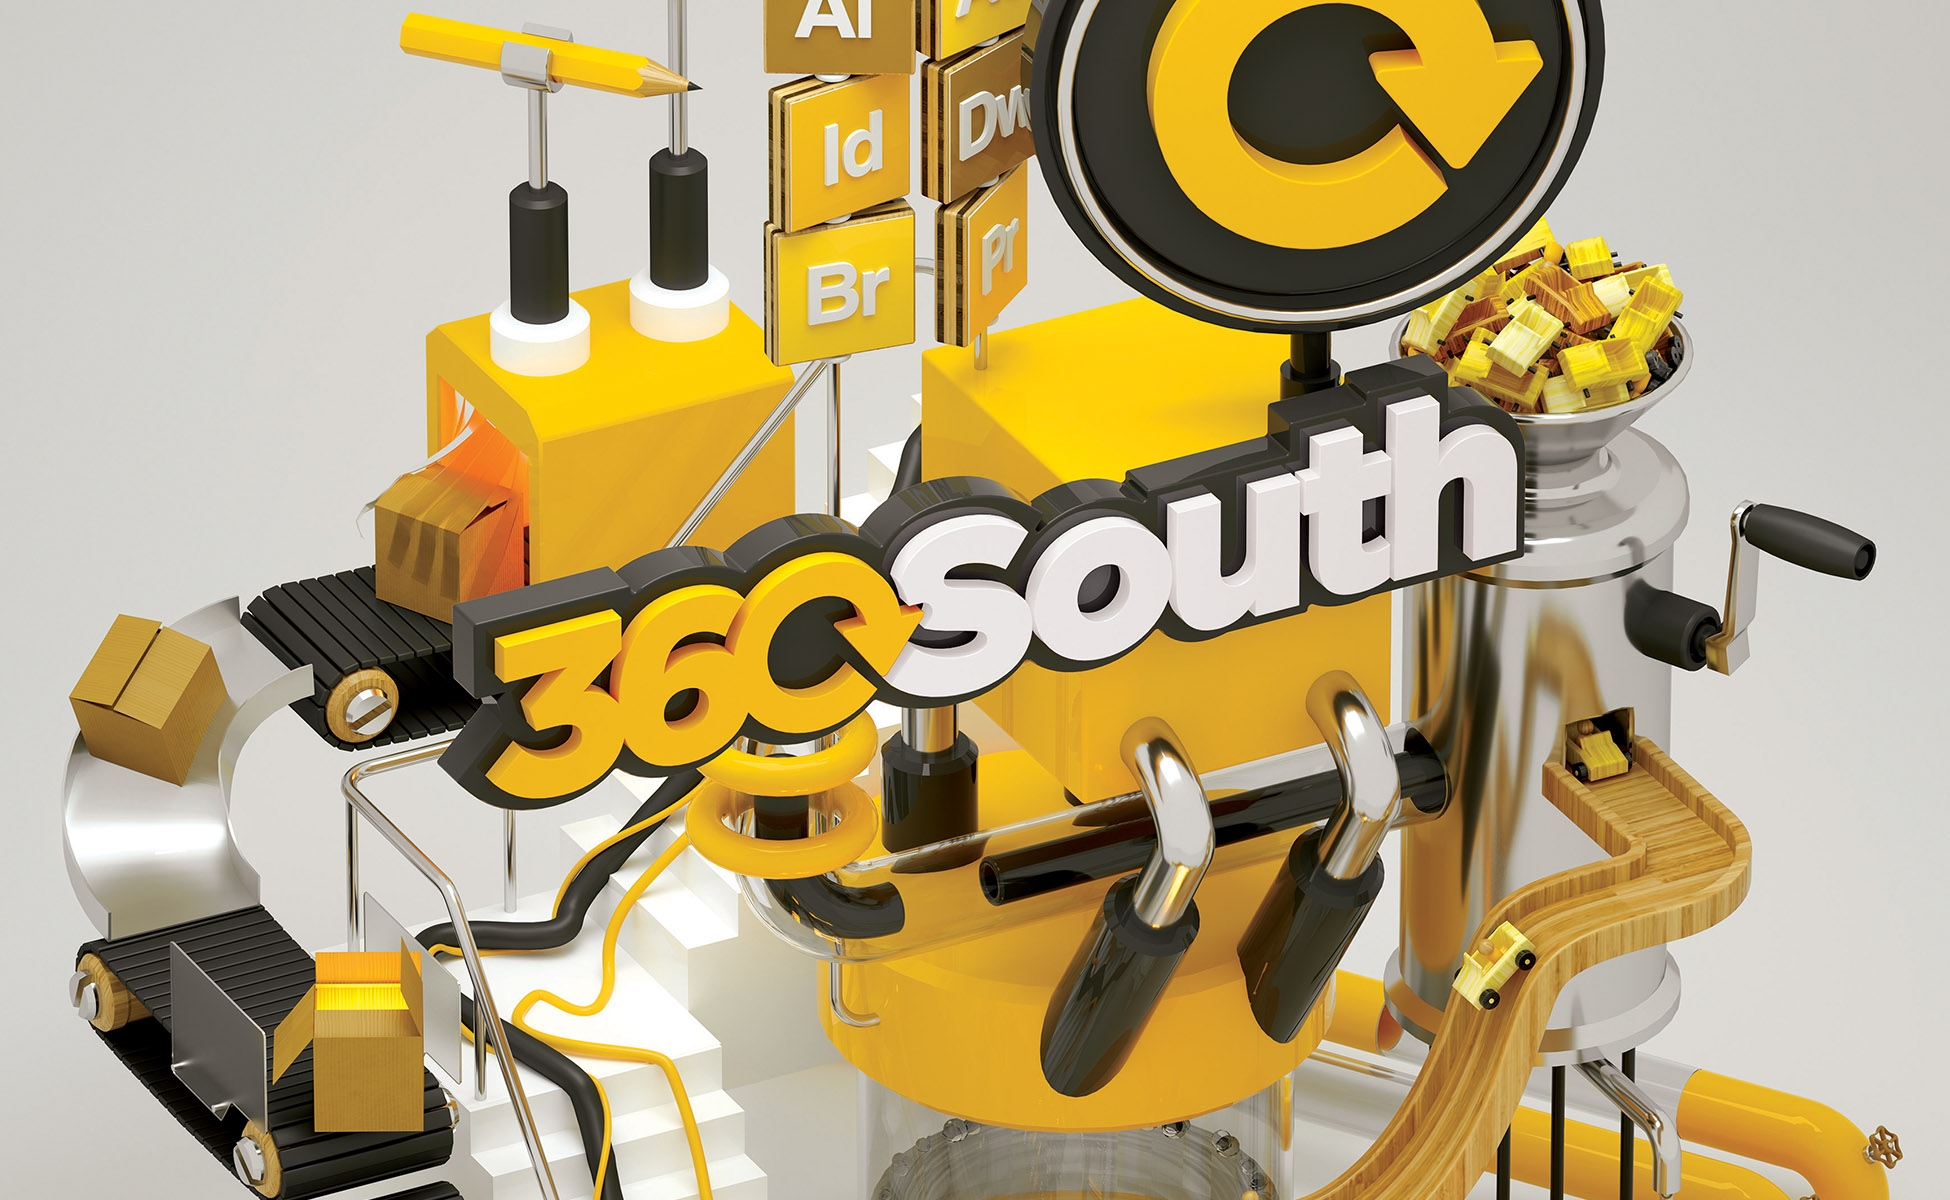 360South Print Artwork - Wide